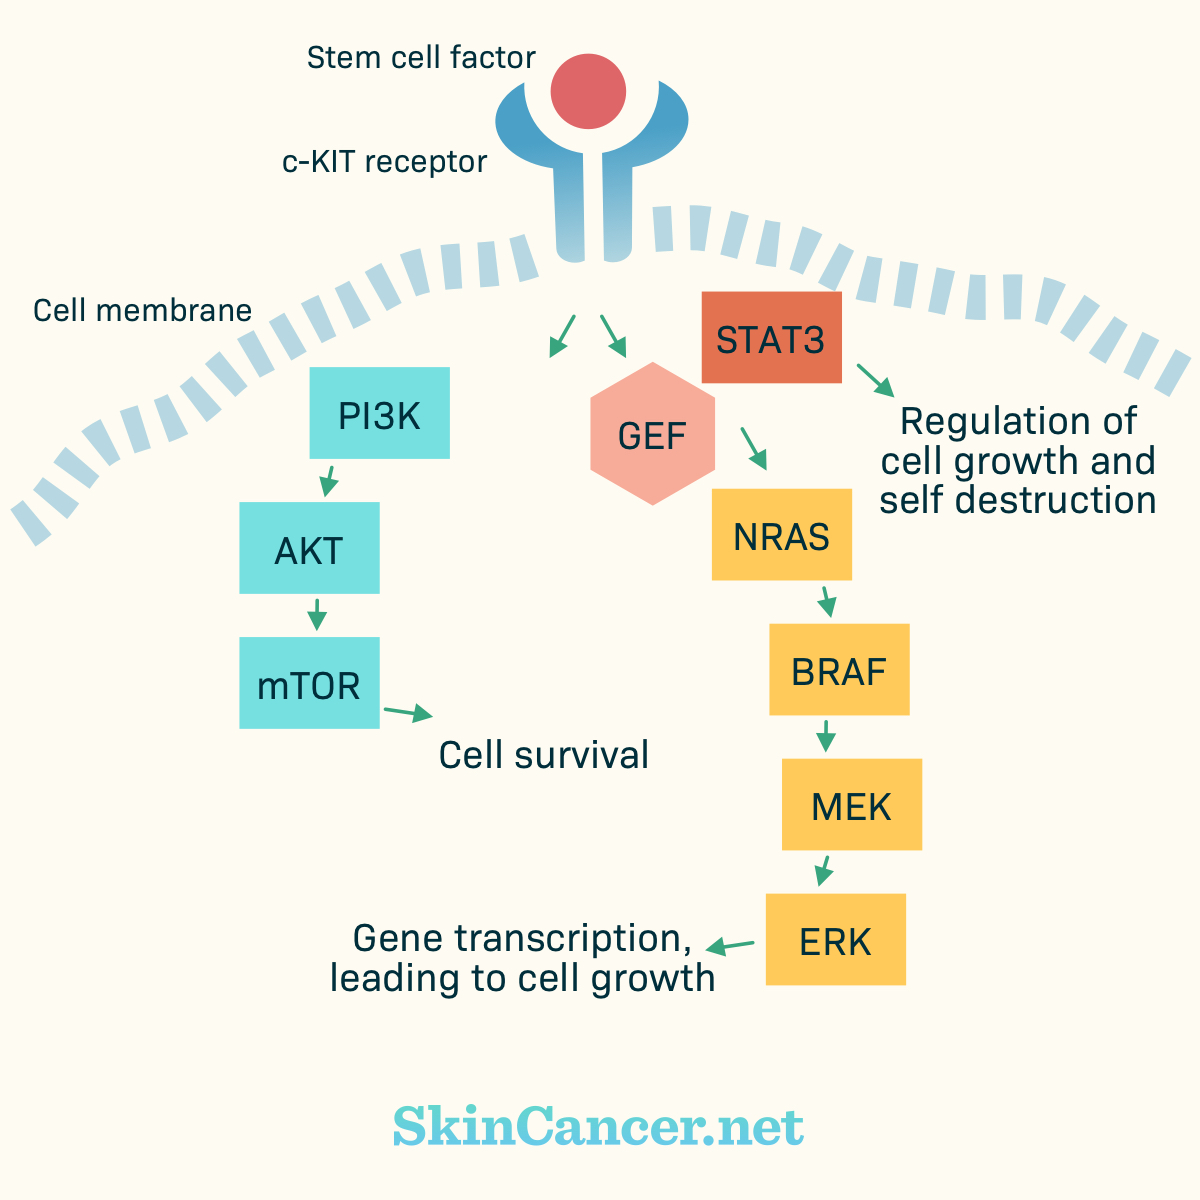 The stem cell factor and C-KIT pathway.